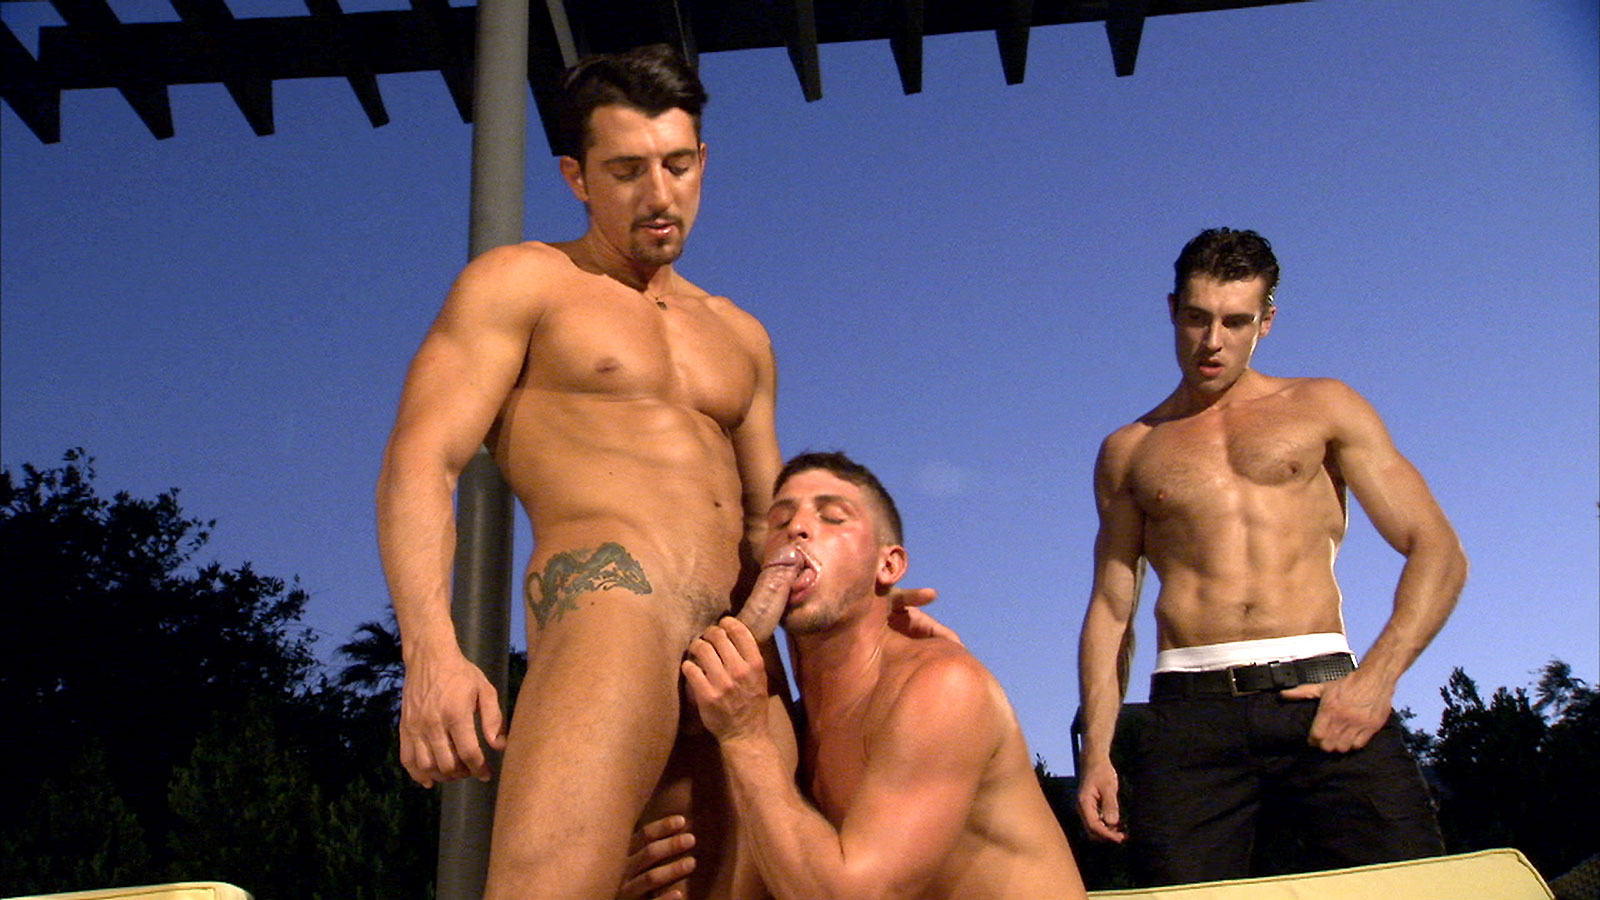 Jimmy Durano, Jayden Grey and Adrian Long - Blind Spot - Scene 2